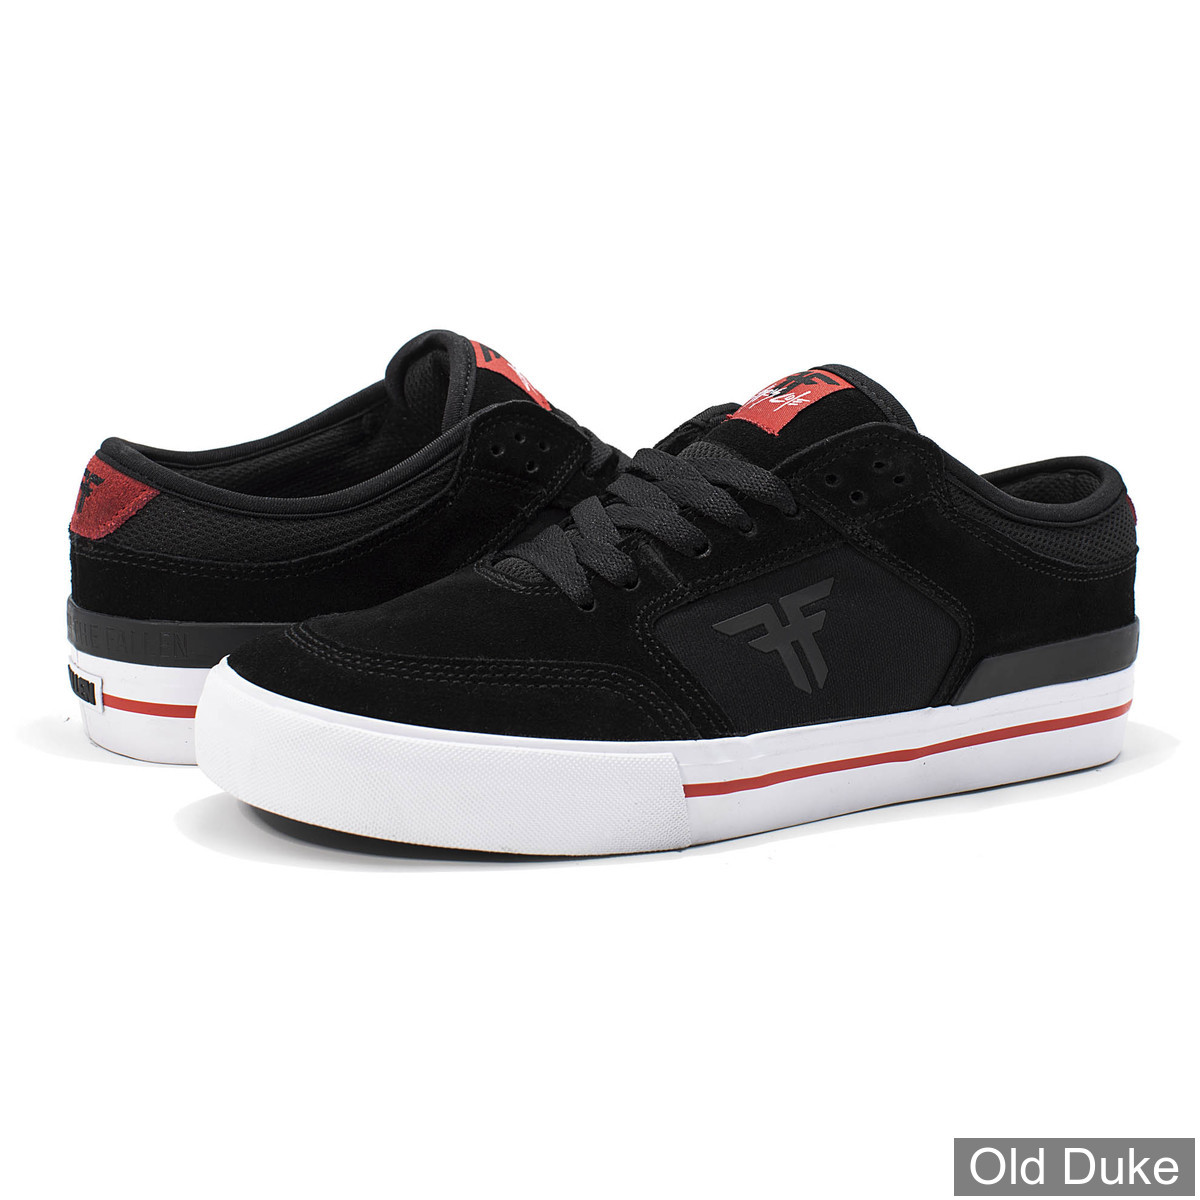 SKATE SHOES - FALLEN - RIPPER - BLACK RED - TAILLE : 44